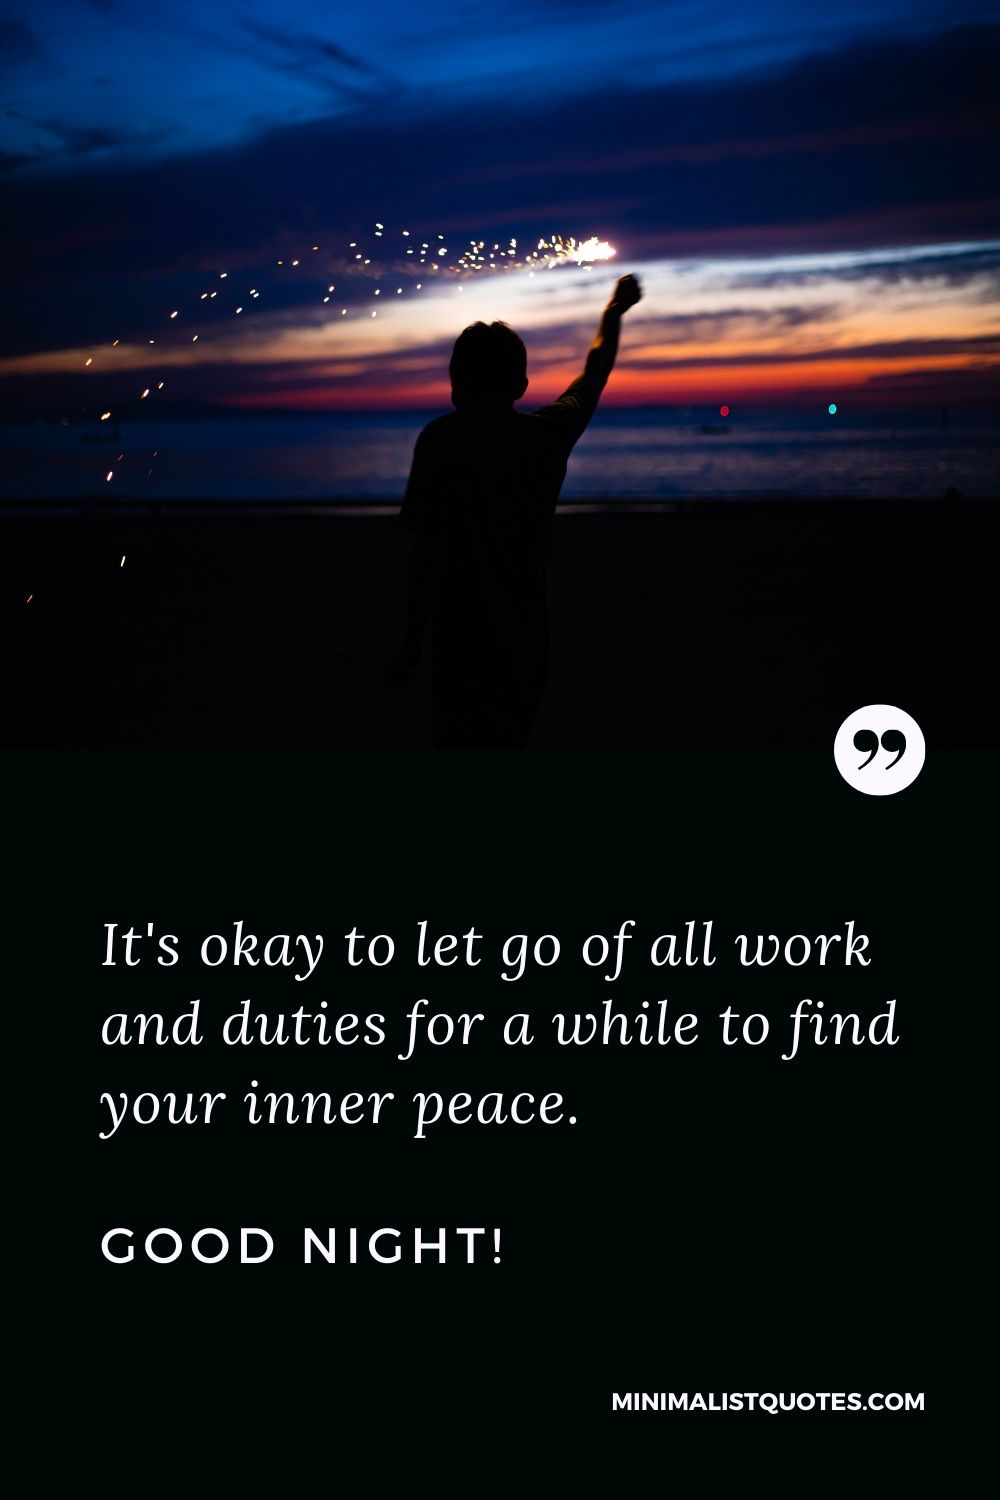 Emotional Good Night Message: It's okay to let go of all work and duties for a while to find your inner peace. Good Night!